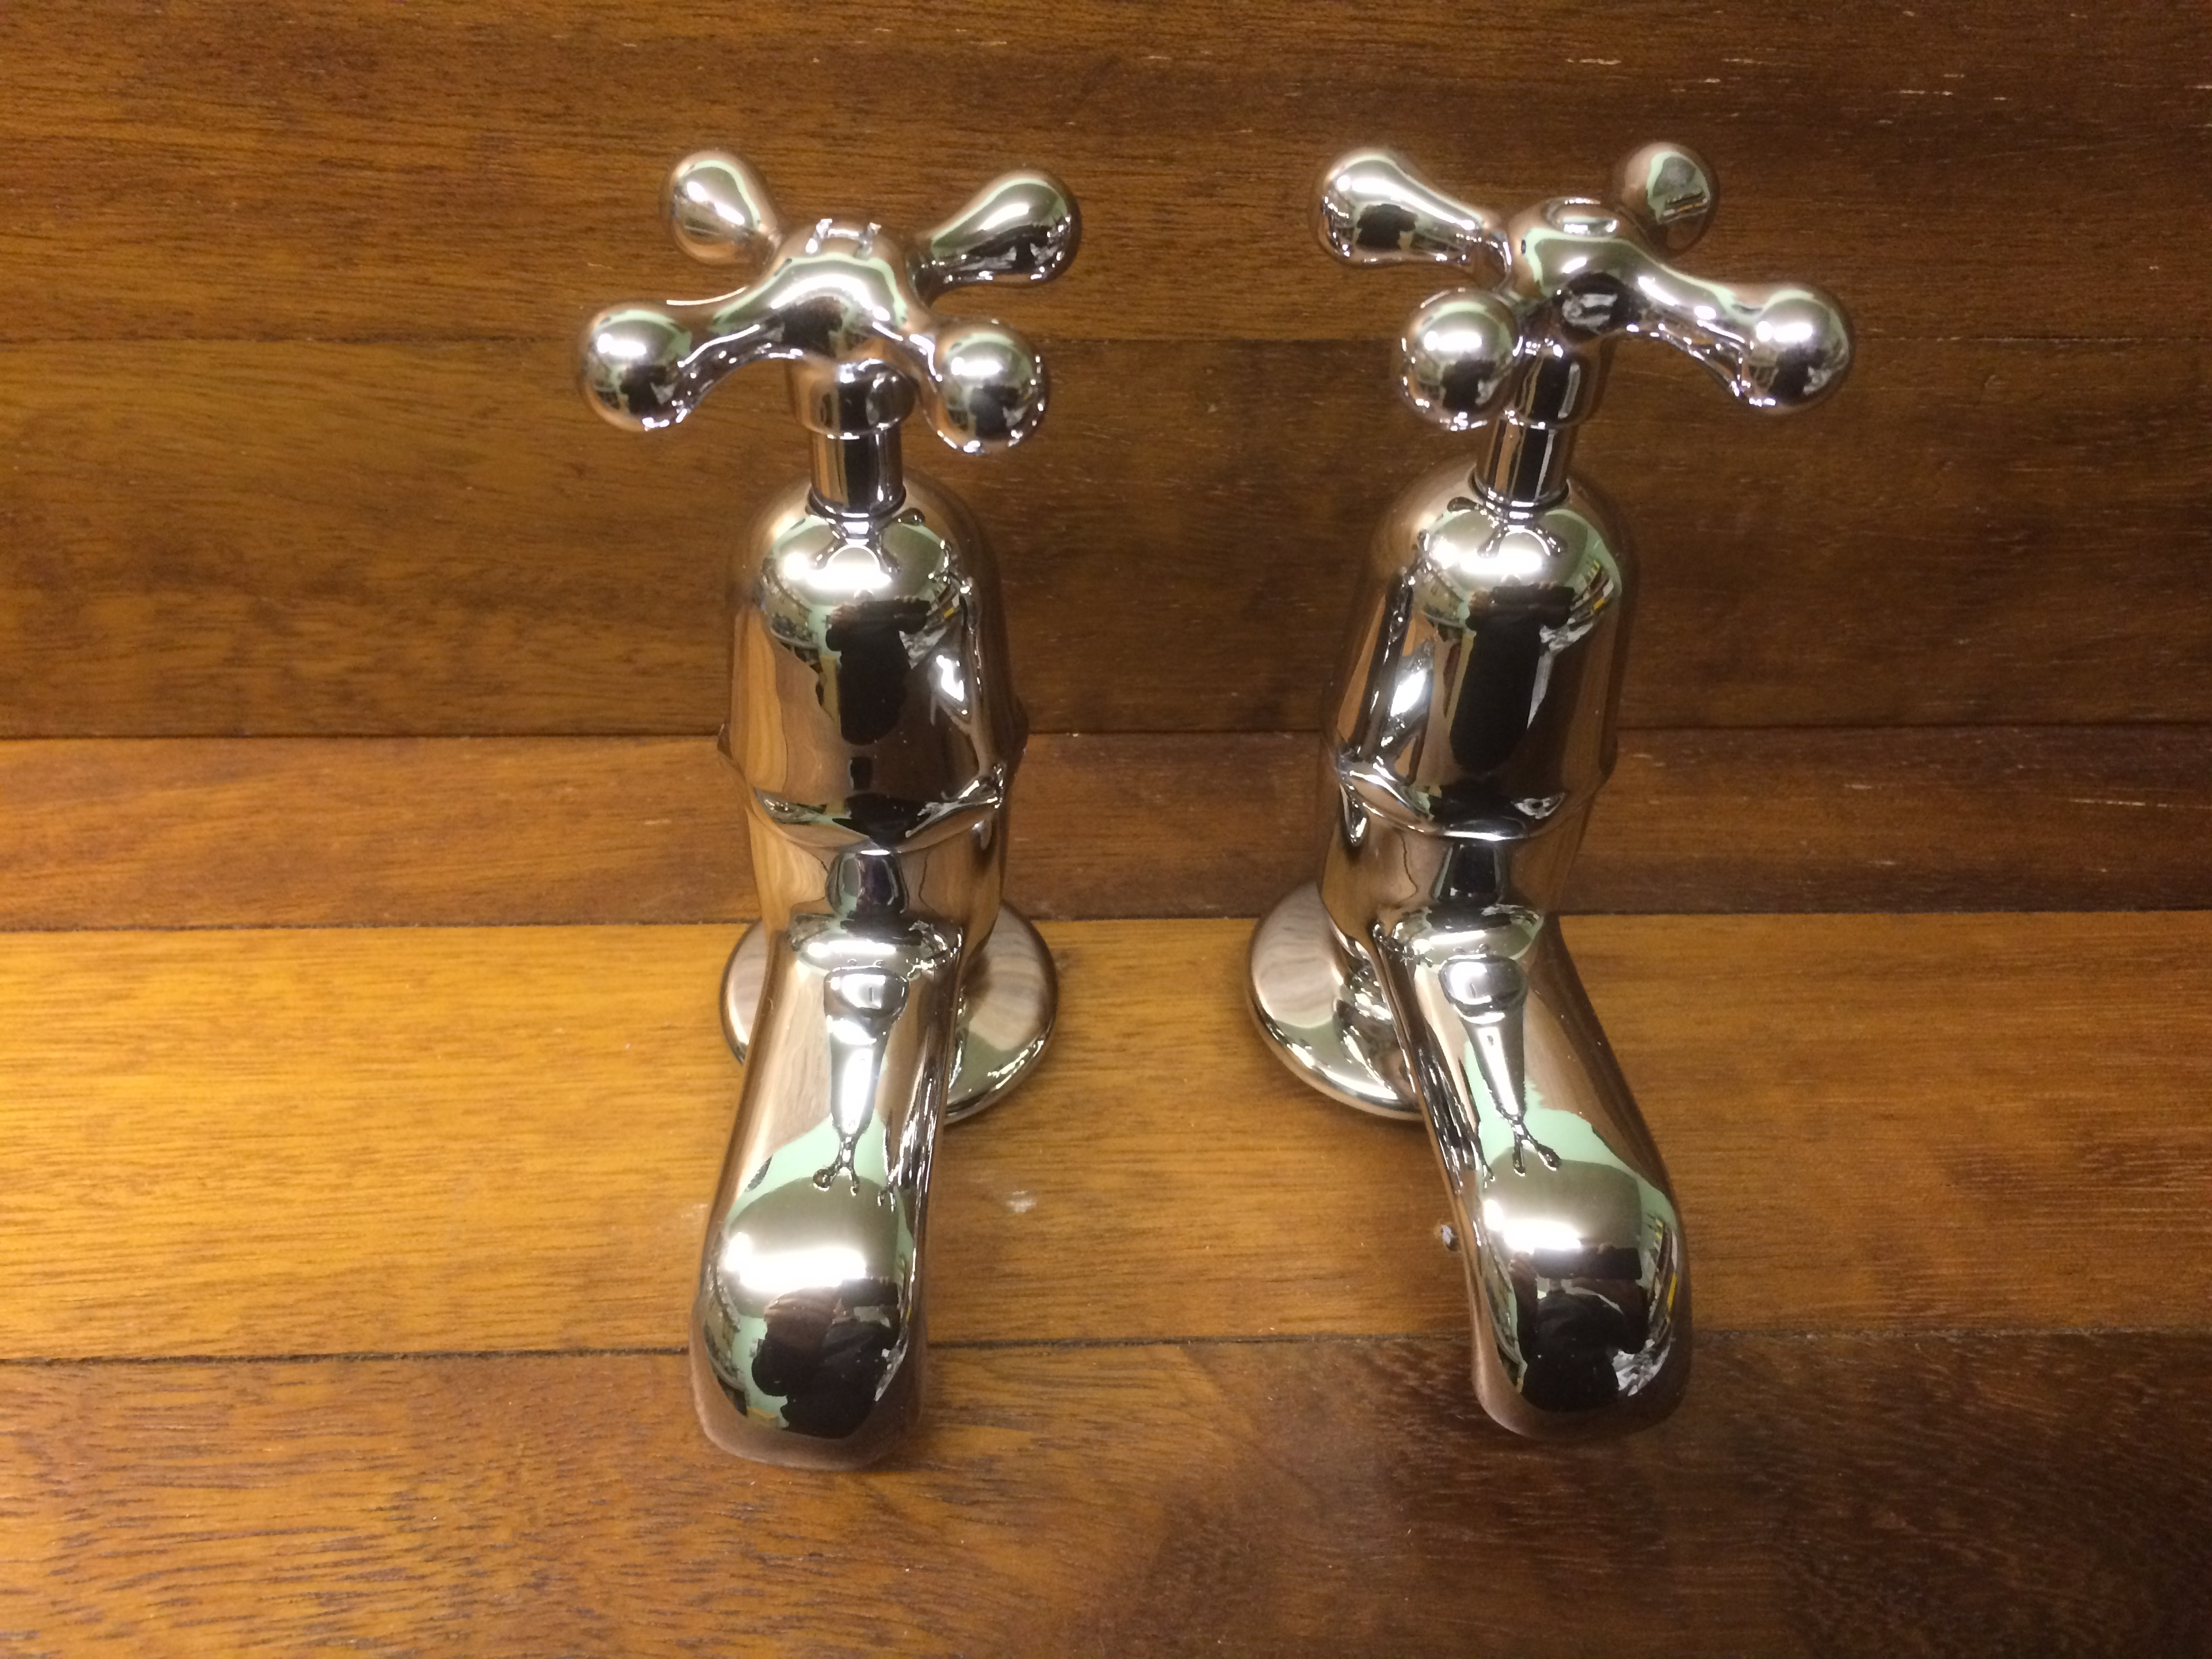 Chrome basin taps with stamped-in indicators.